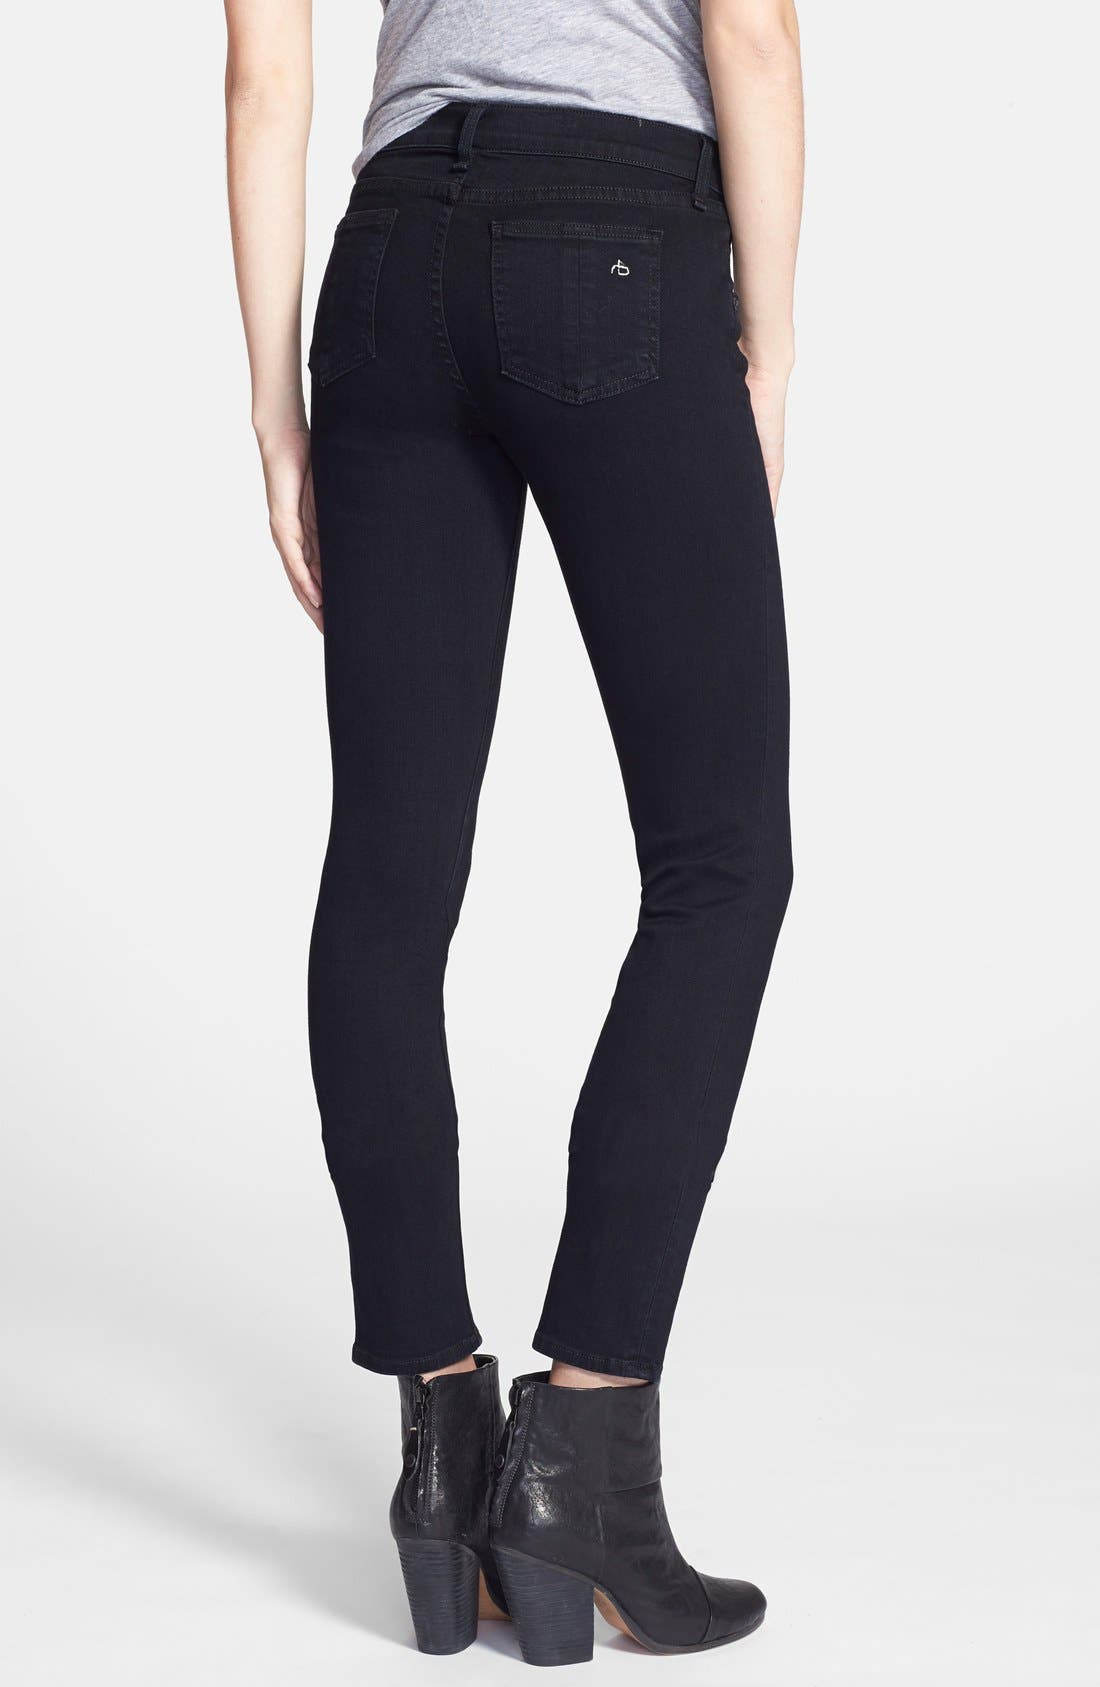 'The Skinny' Stretch Jeans,                             Alternate thumbnail 2, color,                             Coal